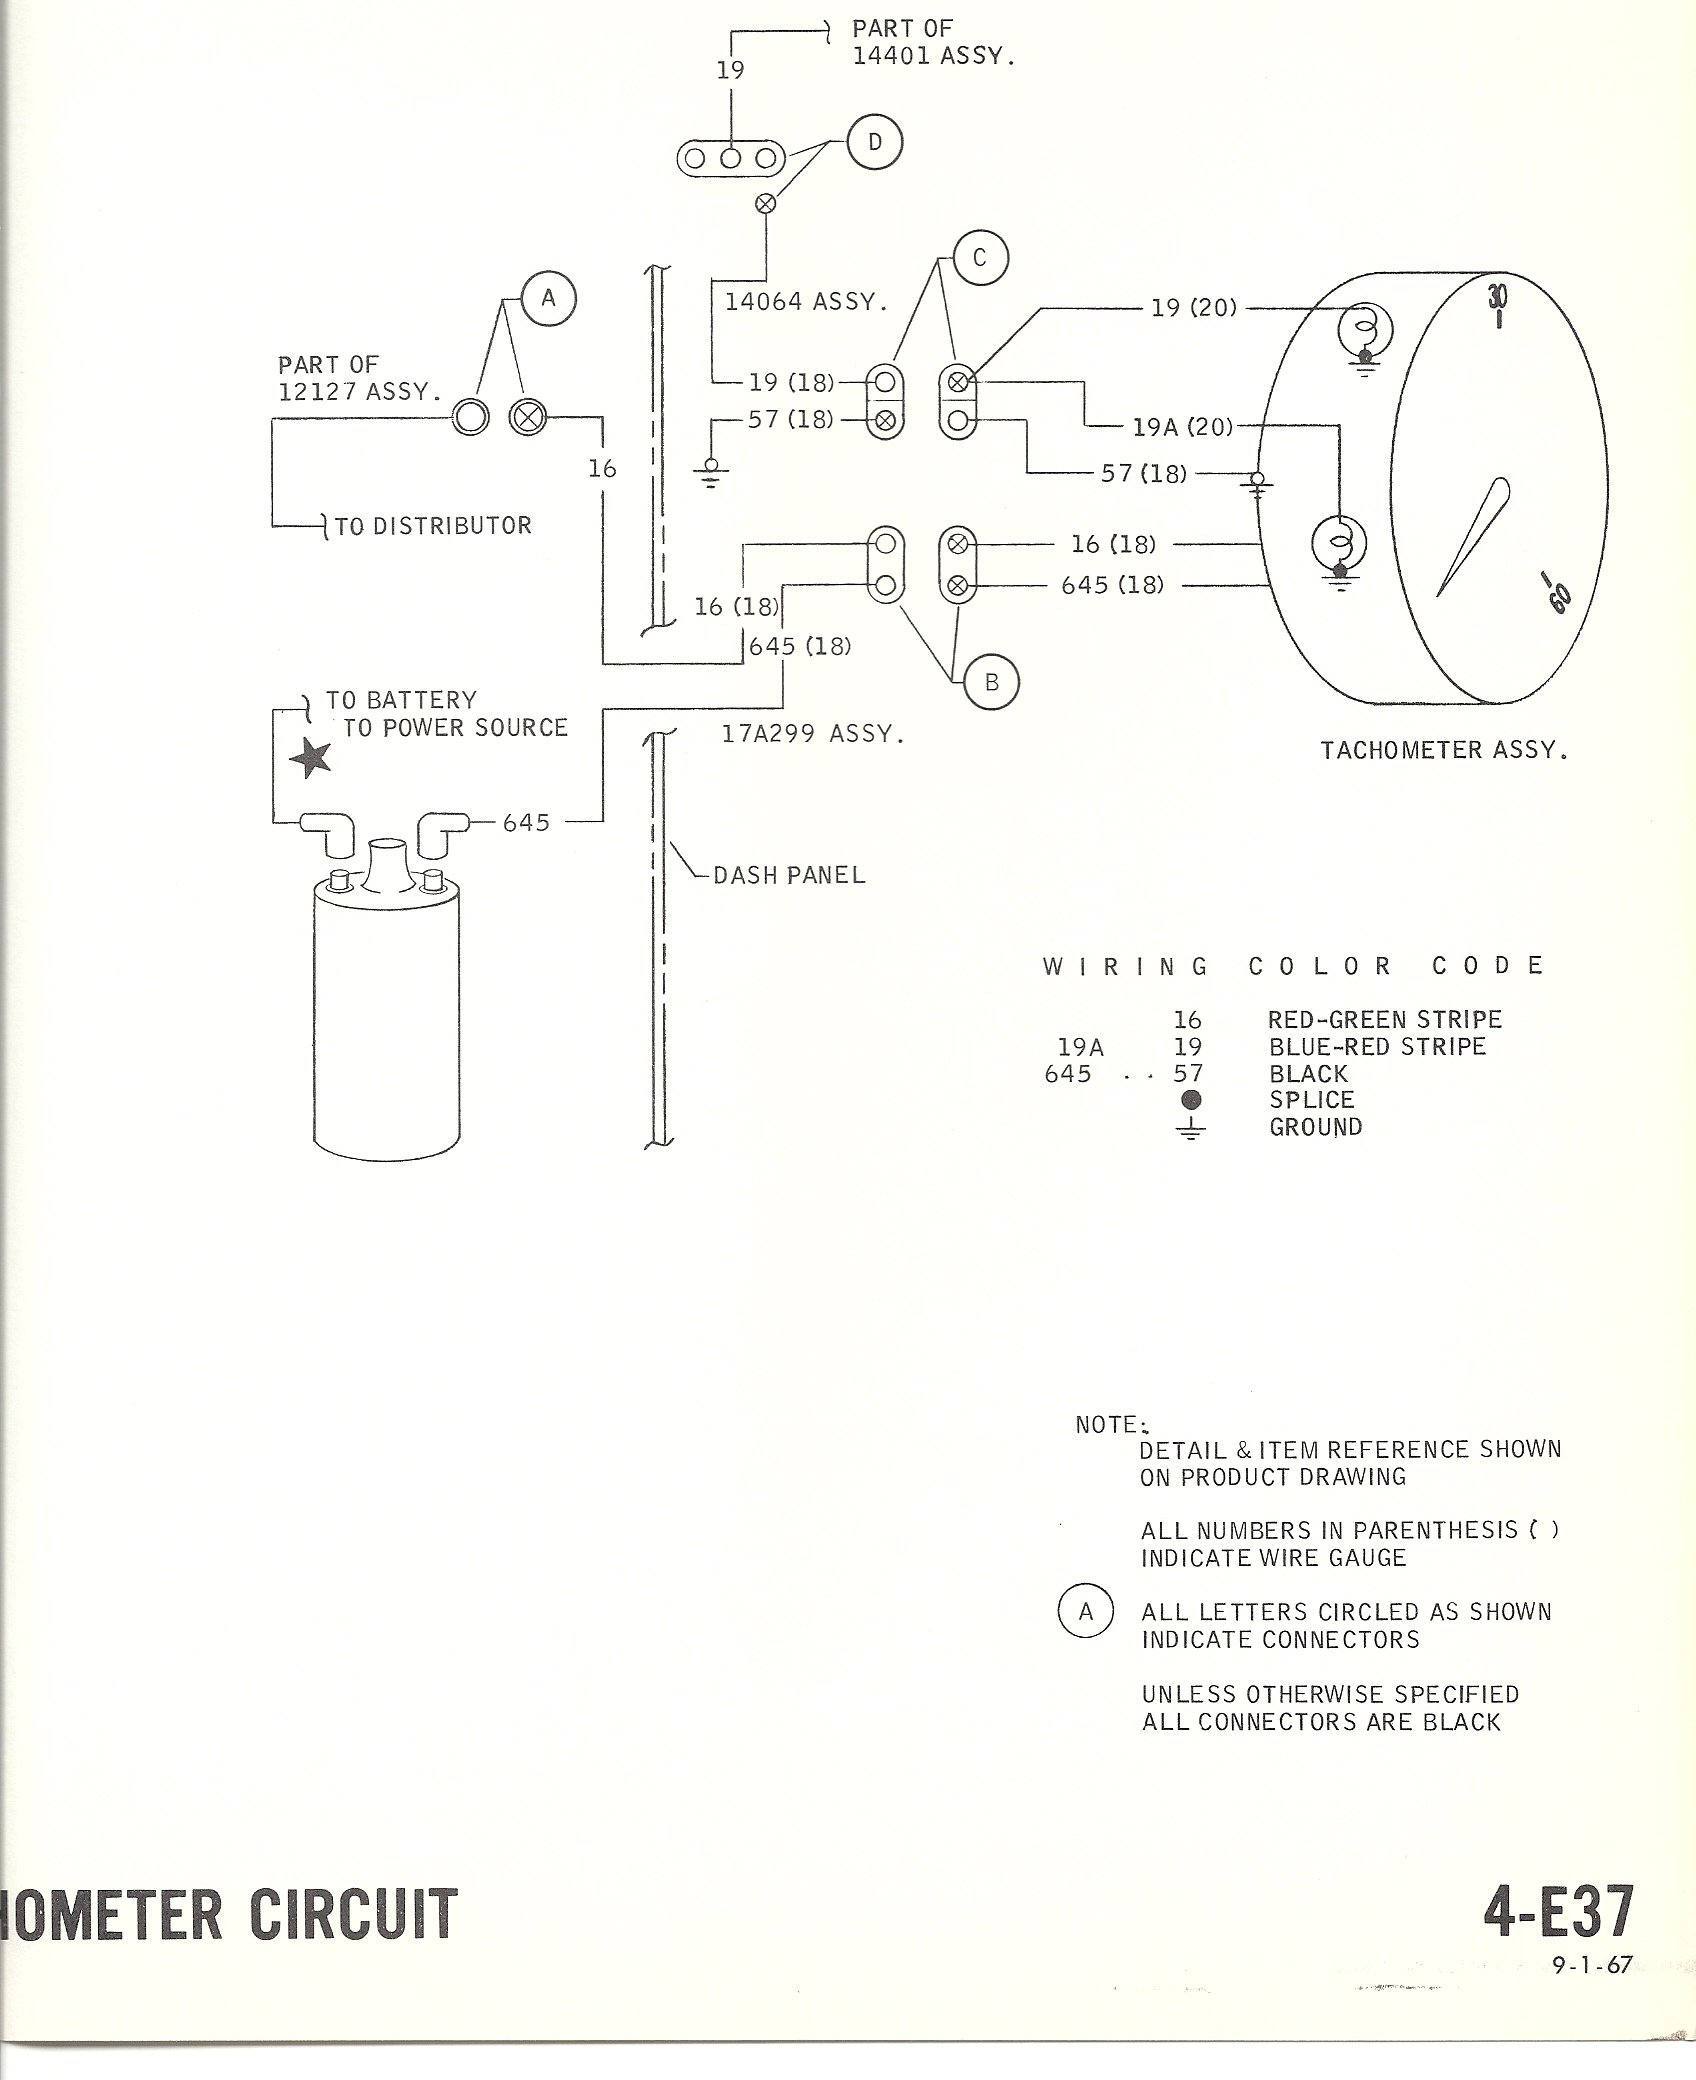 89255d1264897998 1968 mustang wiring diagrams tach please help tach wiring diagram 1968 mustang wiring diagrams with tach, please help ford mustang airguide tachometer wiring diagram at honlapkeszites.co